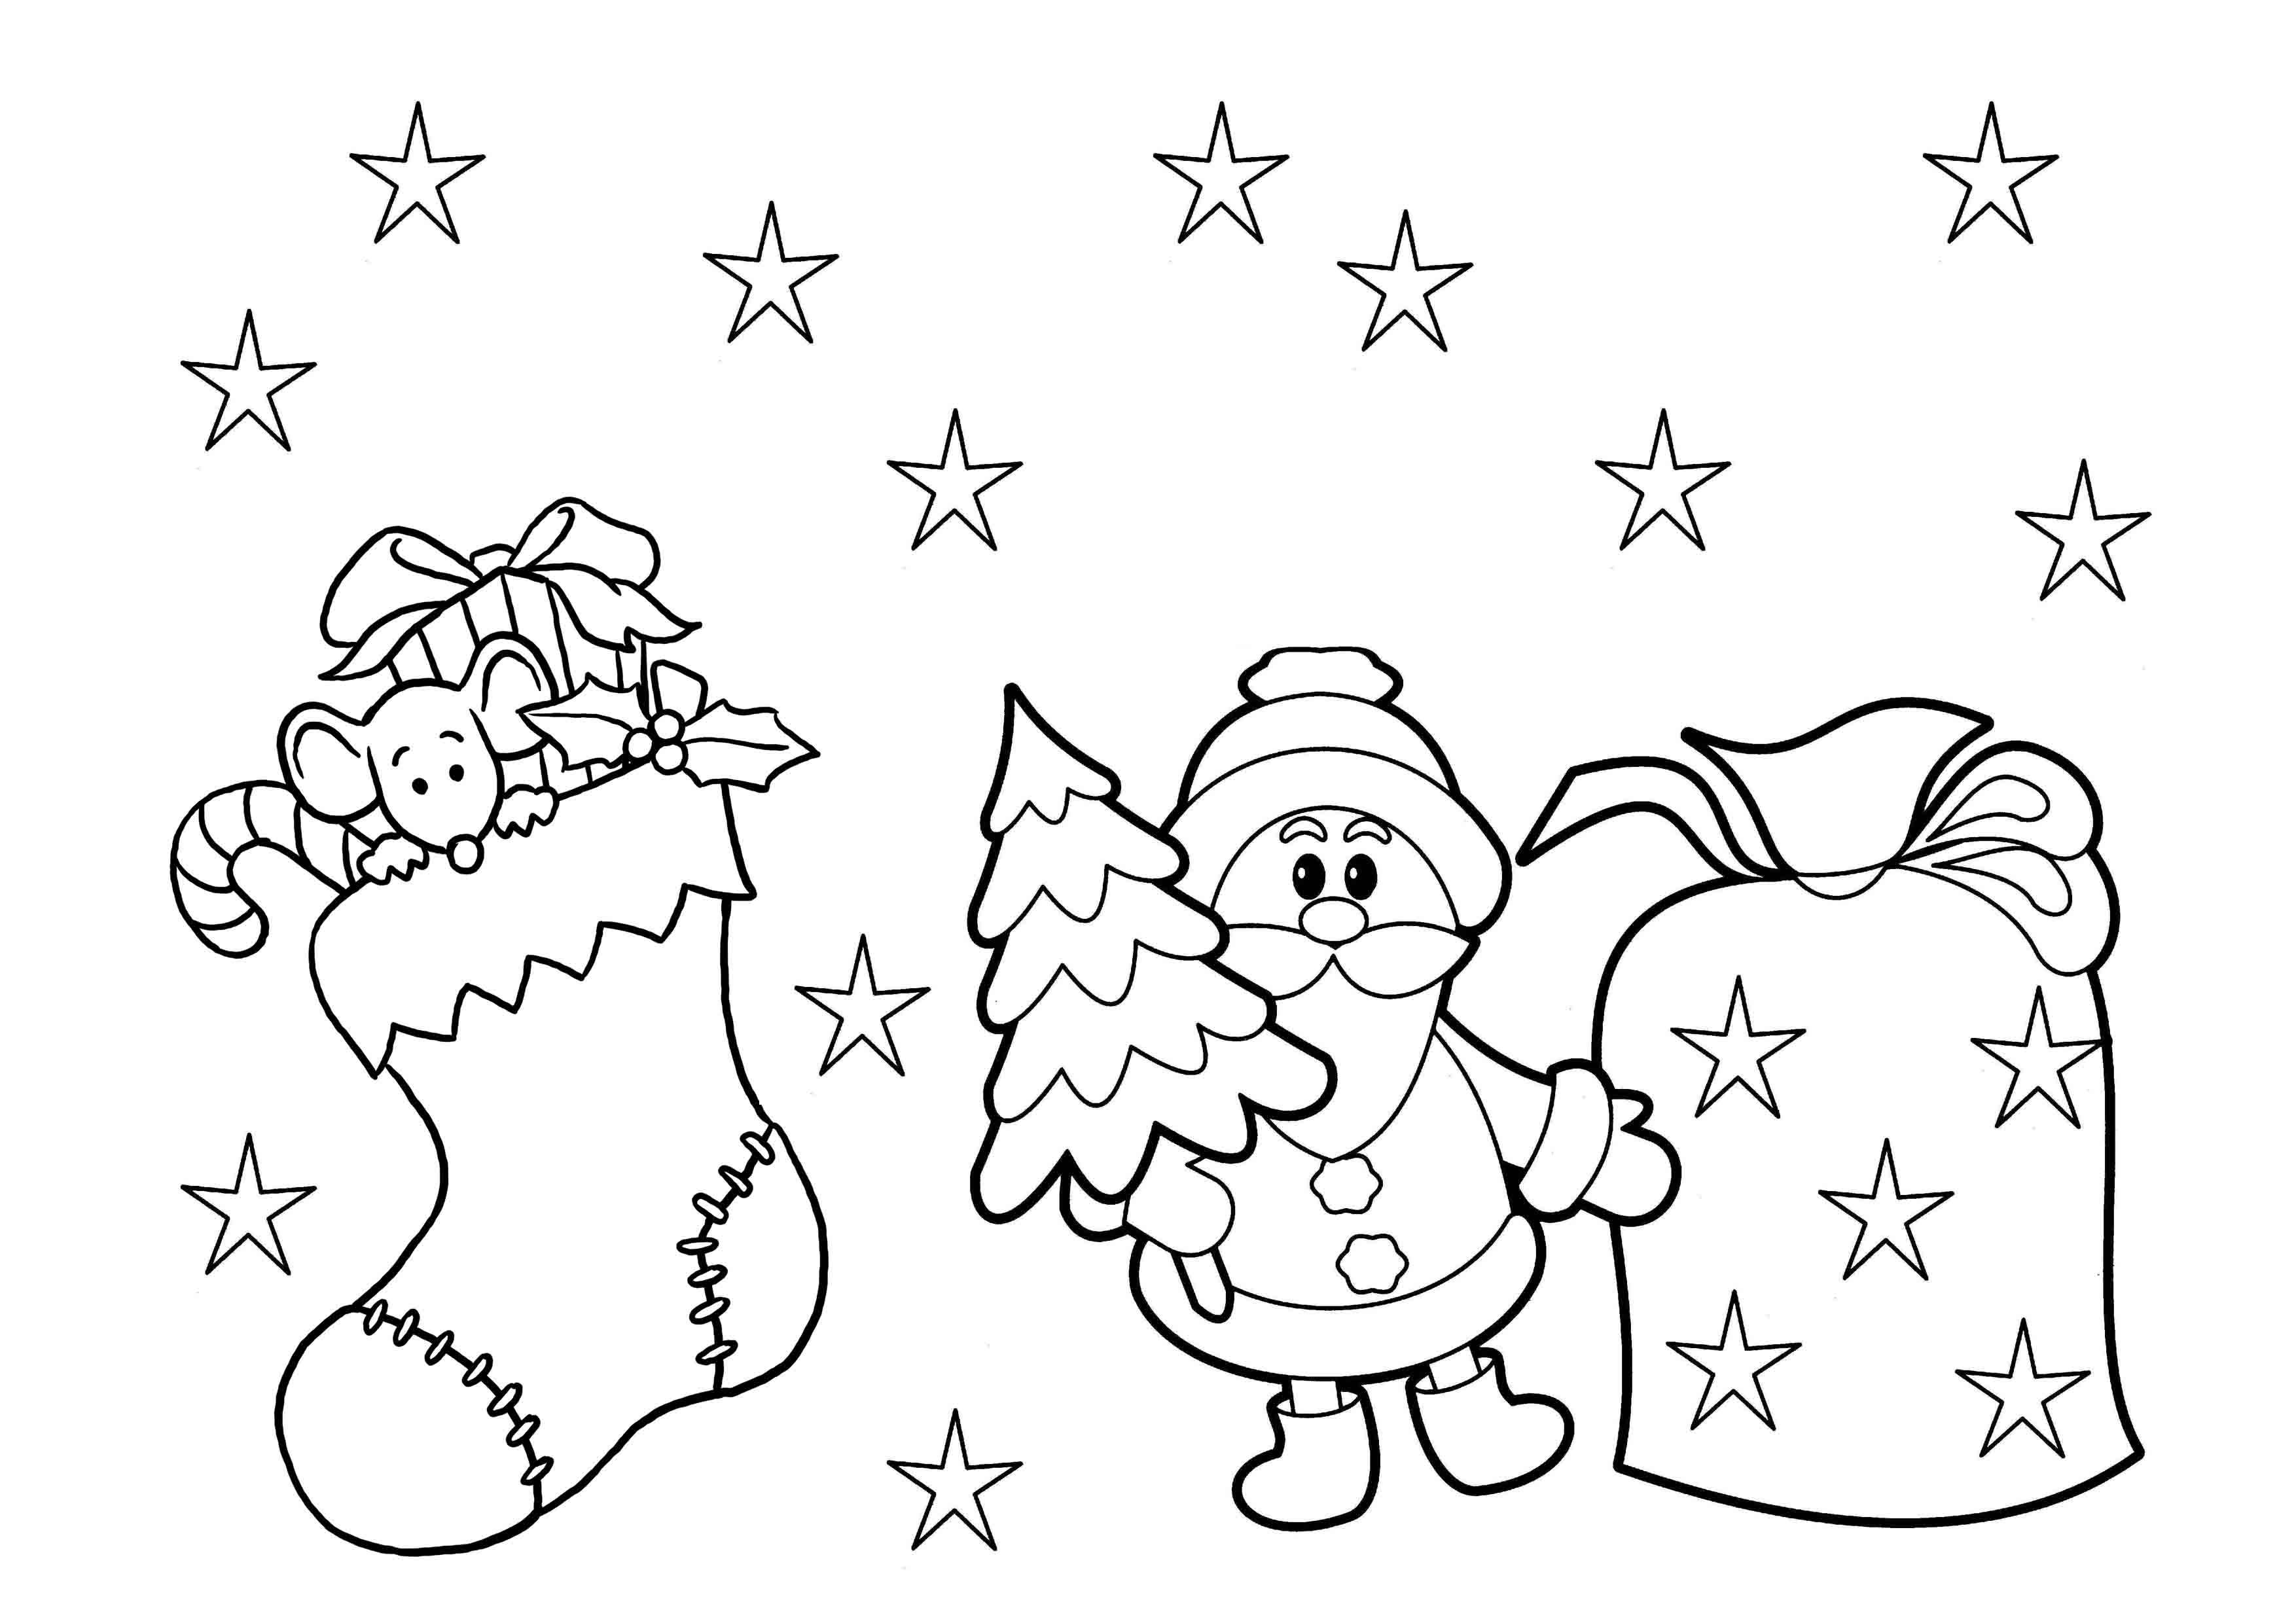 childrens christmas colouring print download printable christmas coloring pages for kids childrens colouring christmas